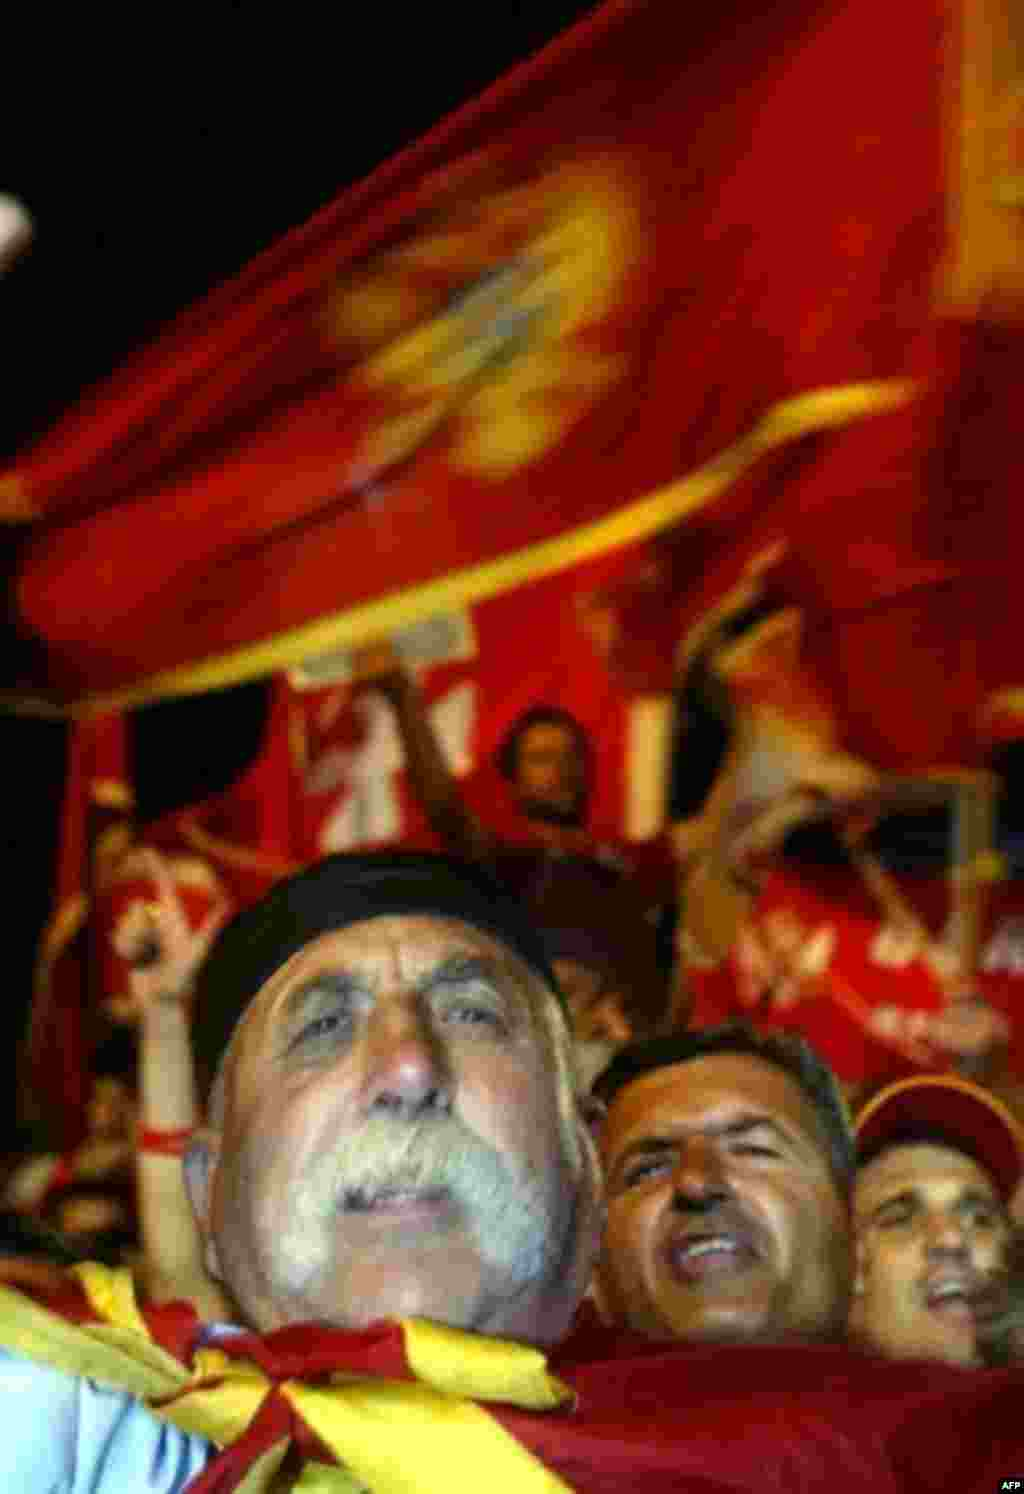 Pro-independence supporters in Cetinje celebrate after Montenegrins narrowly voted for independence from Serbia (AFP) - Milosevic died before he could see the former Yugoslavia splinter again. In early 2002, Serbia and Montenegro loosened their ties, and in May 2006, Montenegrins decided the remaining bonds were still too tight. It seemed that Montenegro might just be followed by Kosovo, but by the end of 2006 the future status of Serbia's UN-protected largely ethnic-Albanian province was still unclear.